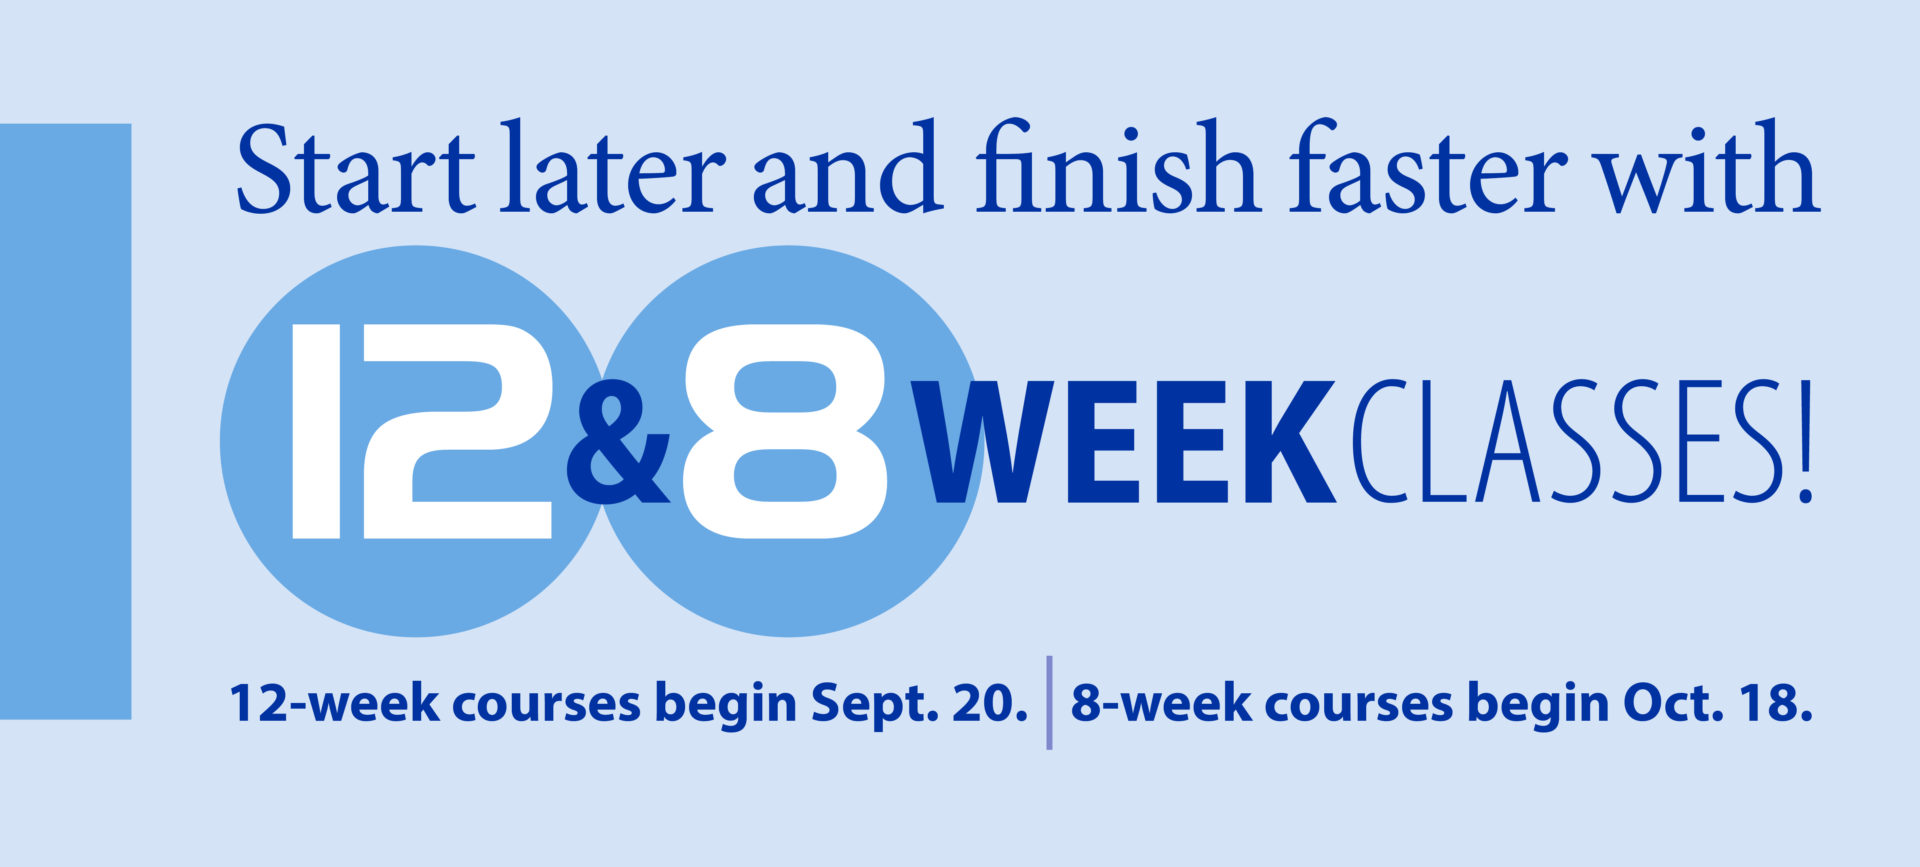 Start later and finish faster with 12 and 8 week classes! 12-week courses begin Sept. 20. 8-week courses begin Oct. 18.